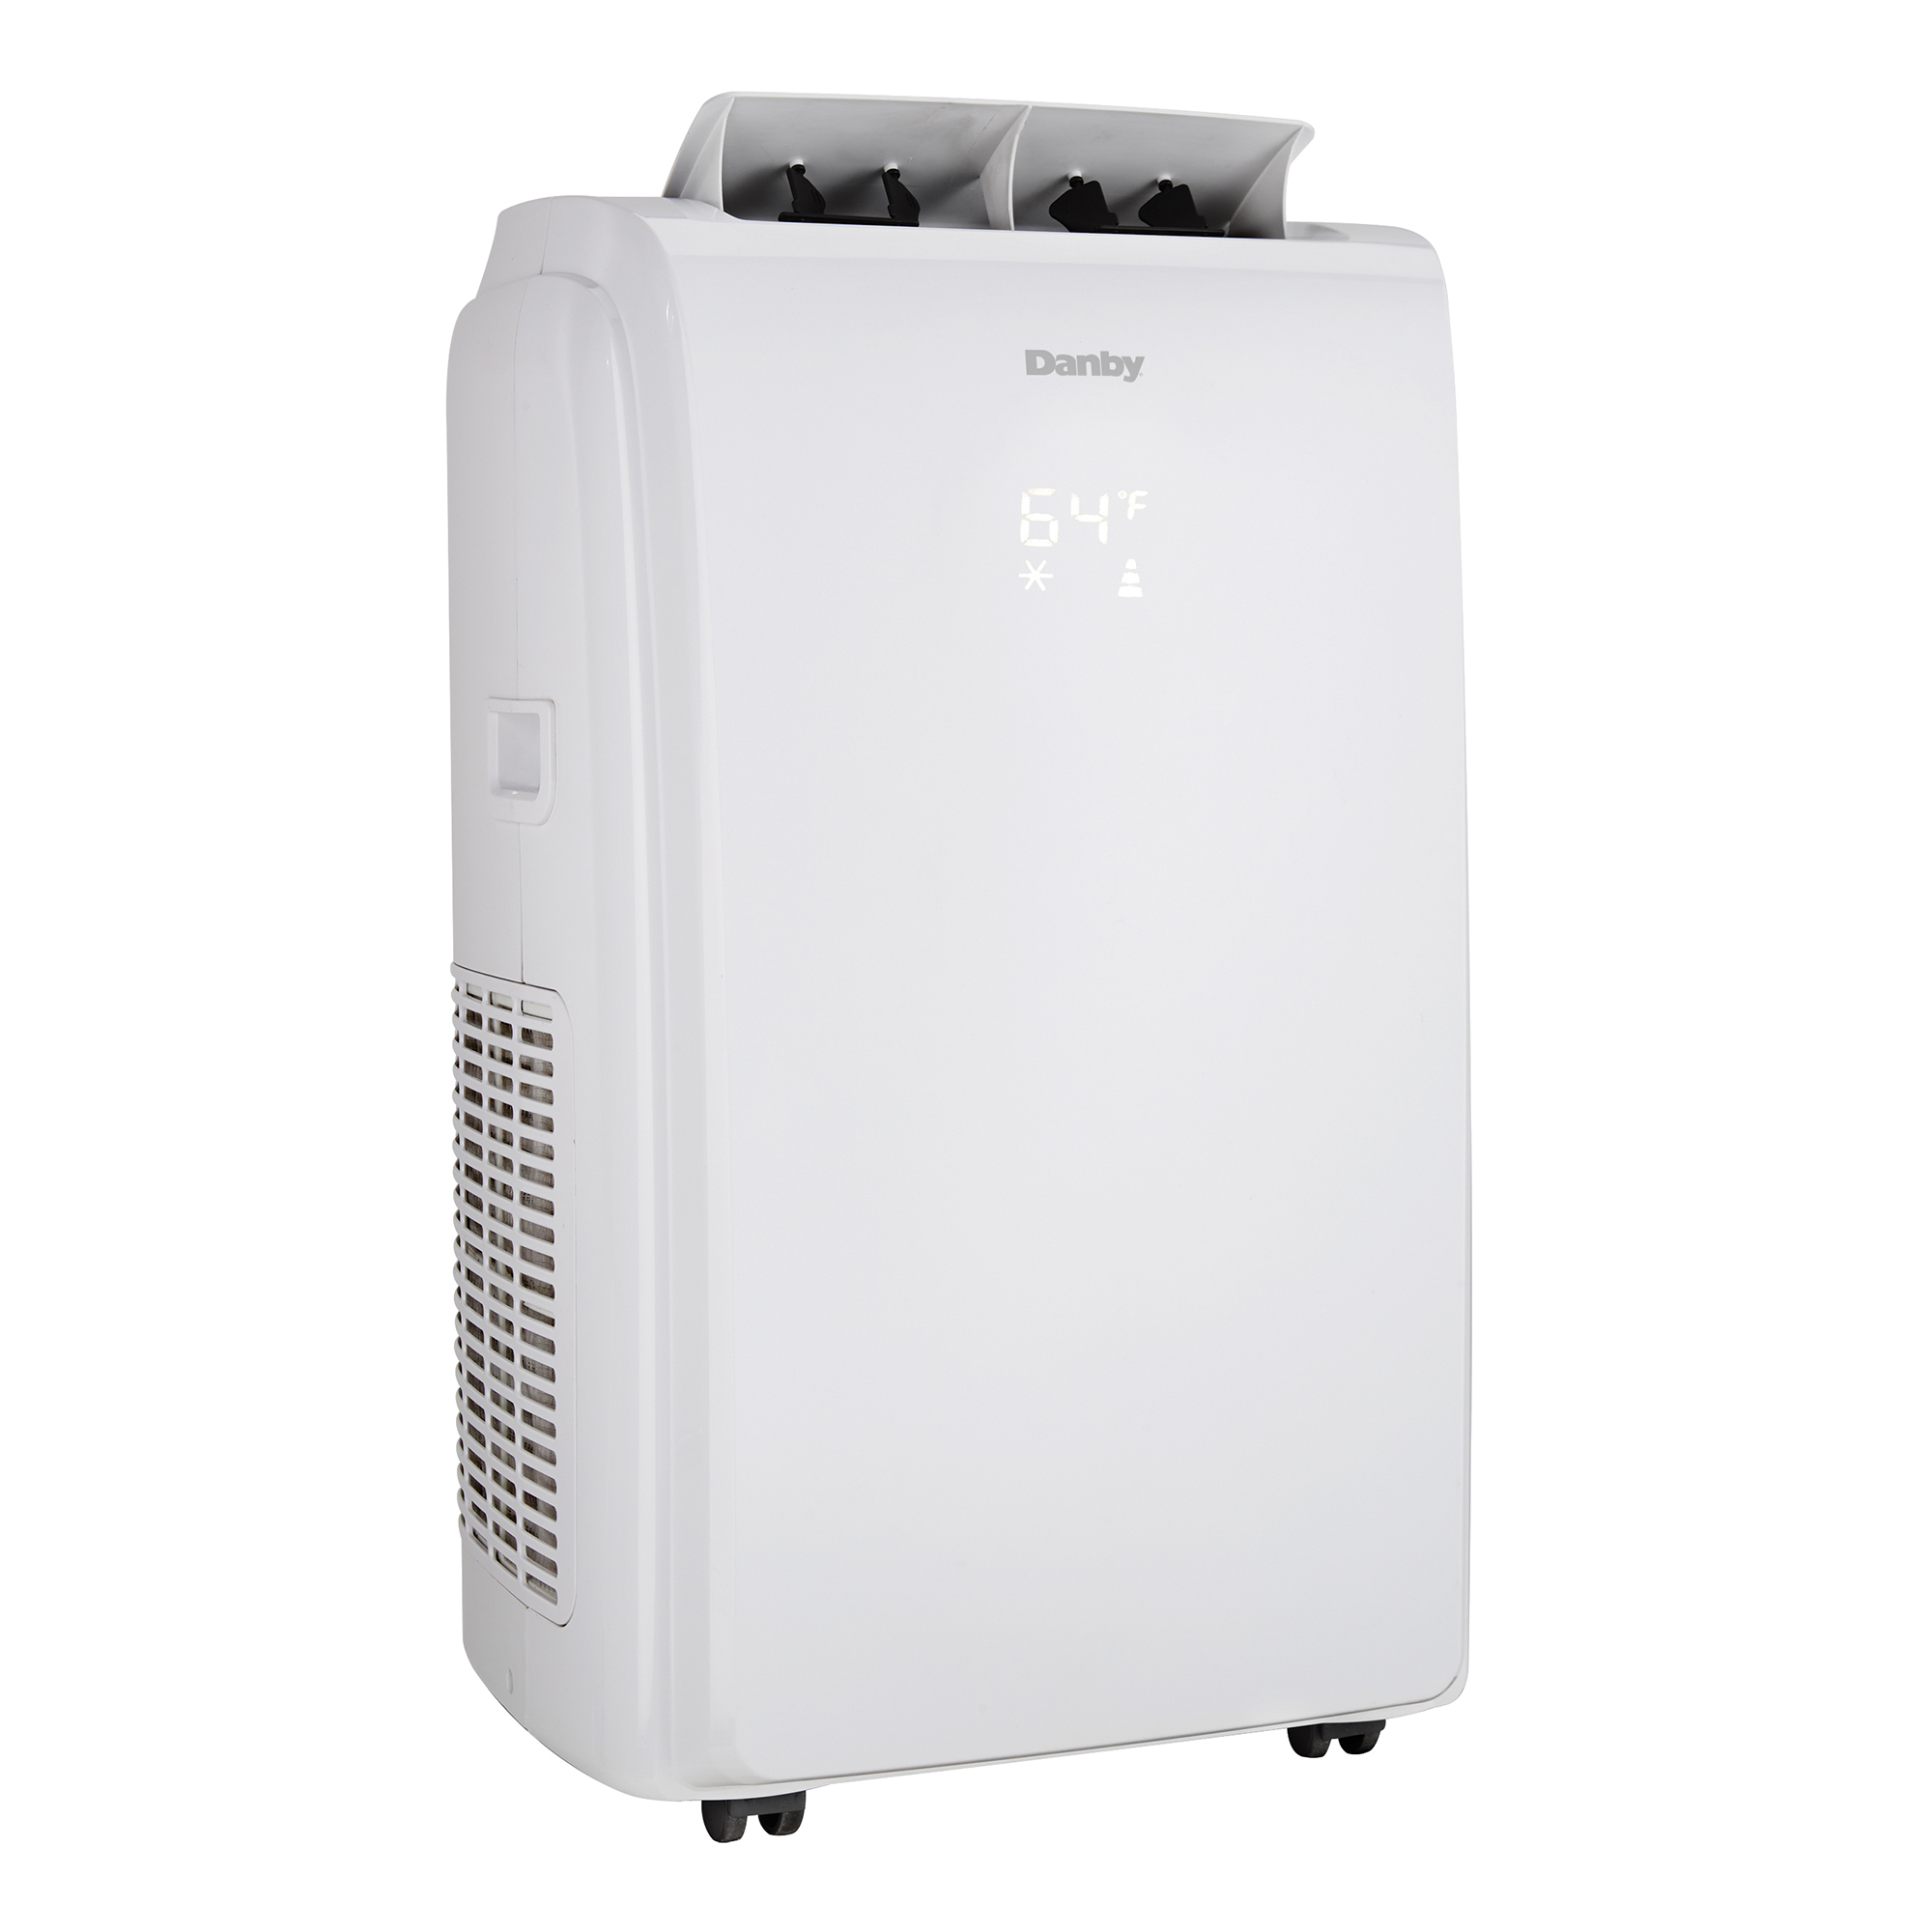 Danby 12000 Btu Portable Dehumidifier Amp Air Conditioner